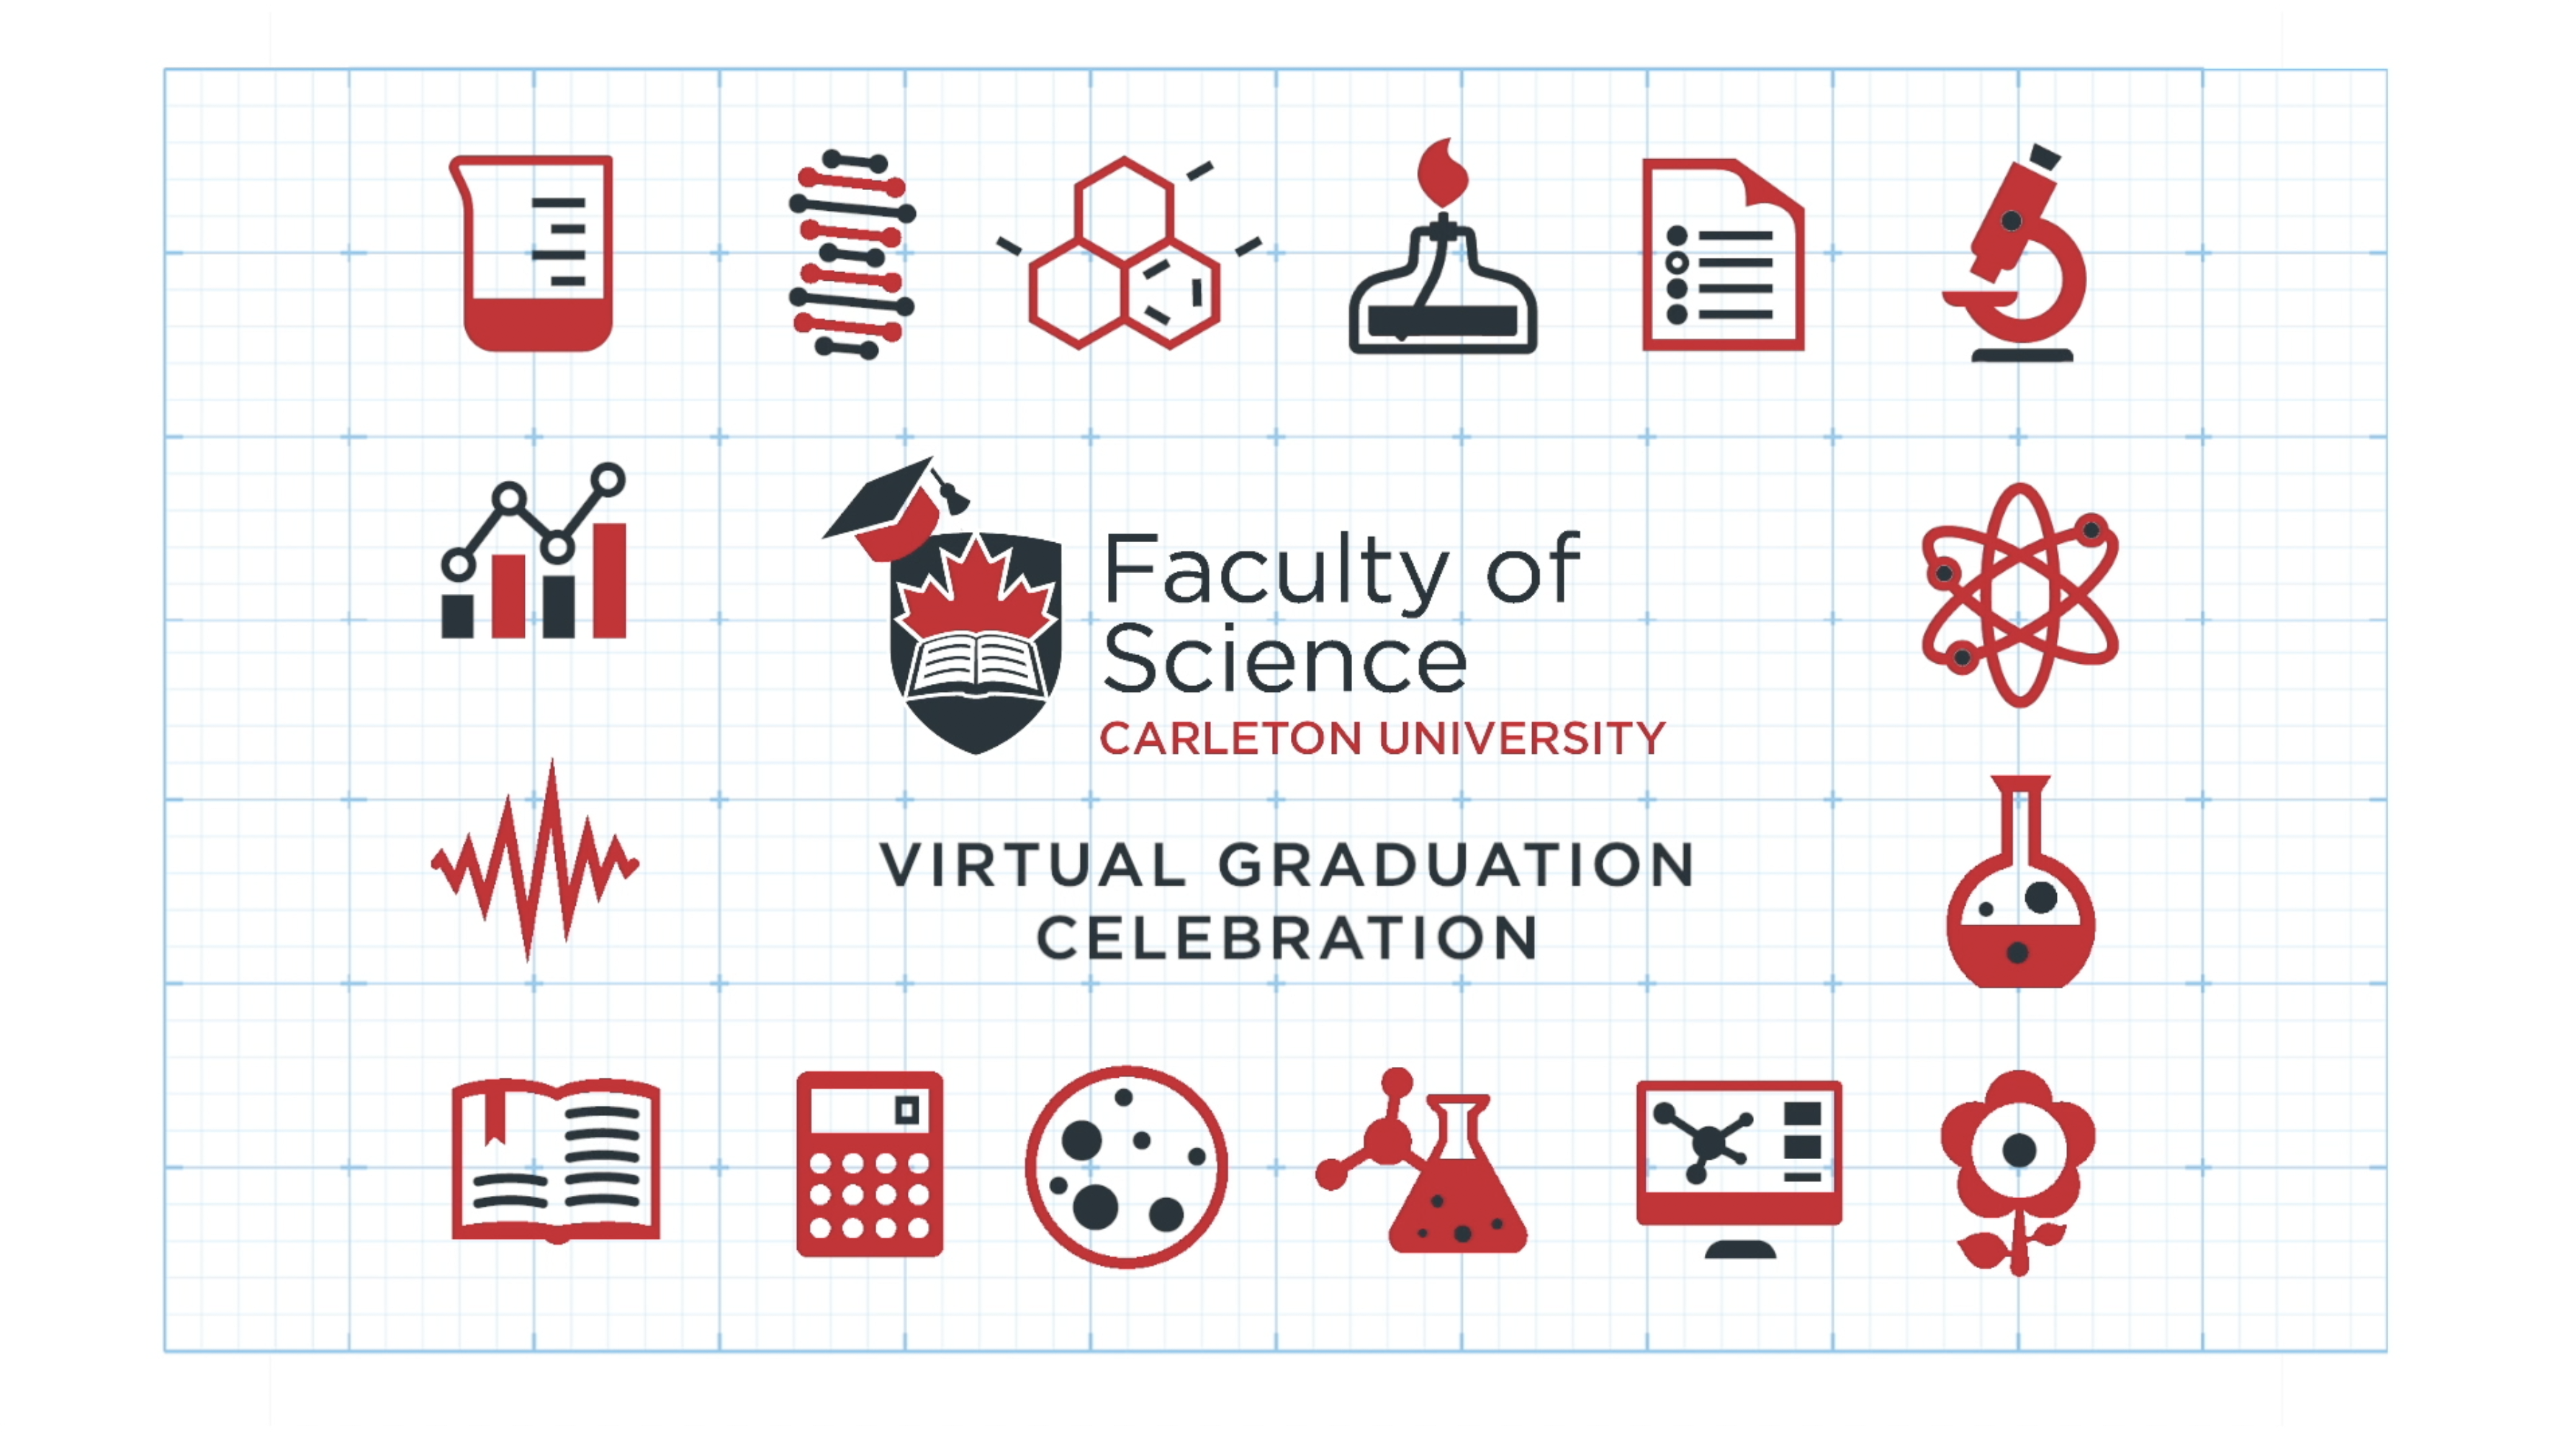 A graphic containing science icons promoting the Virtual graduation celebration